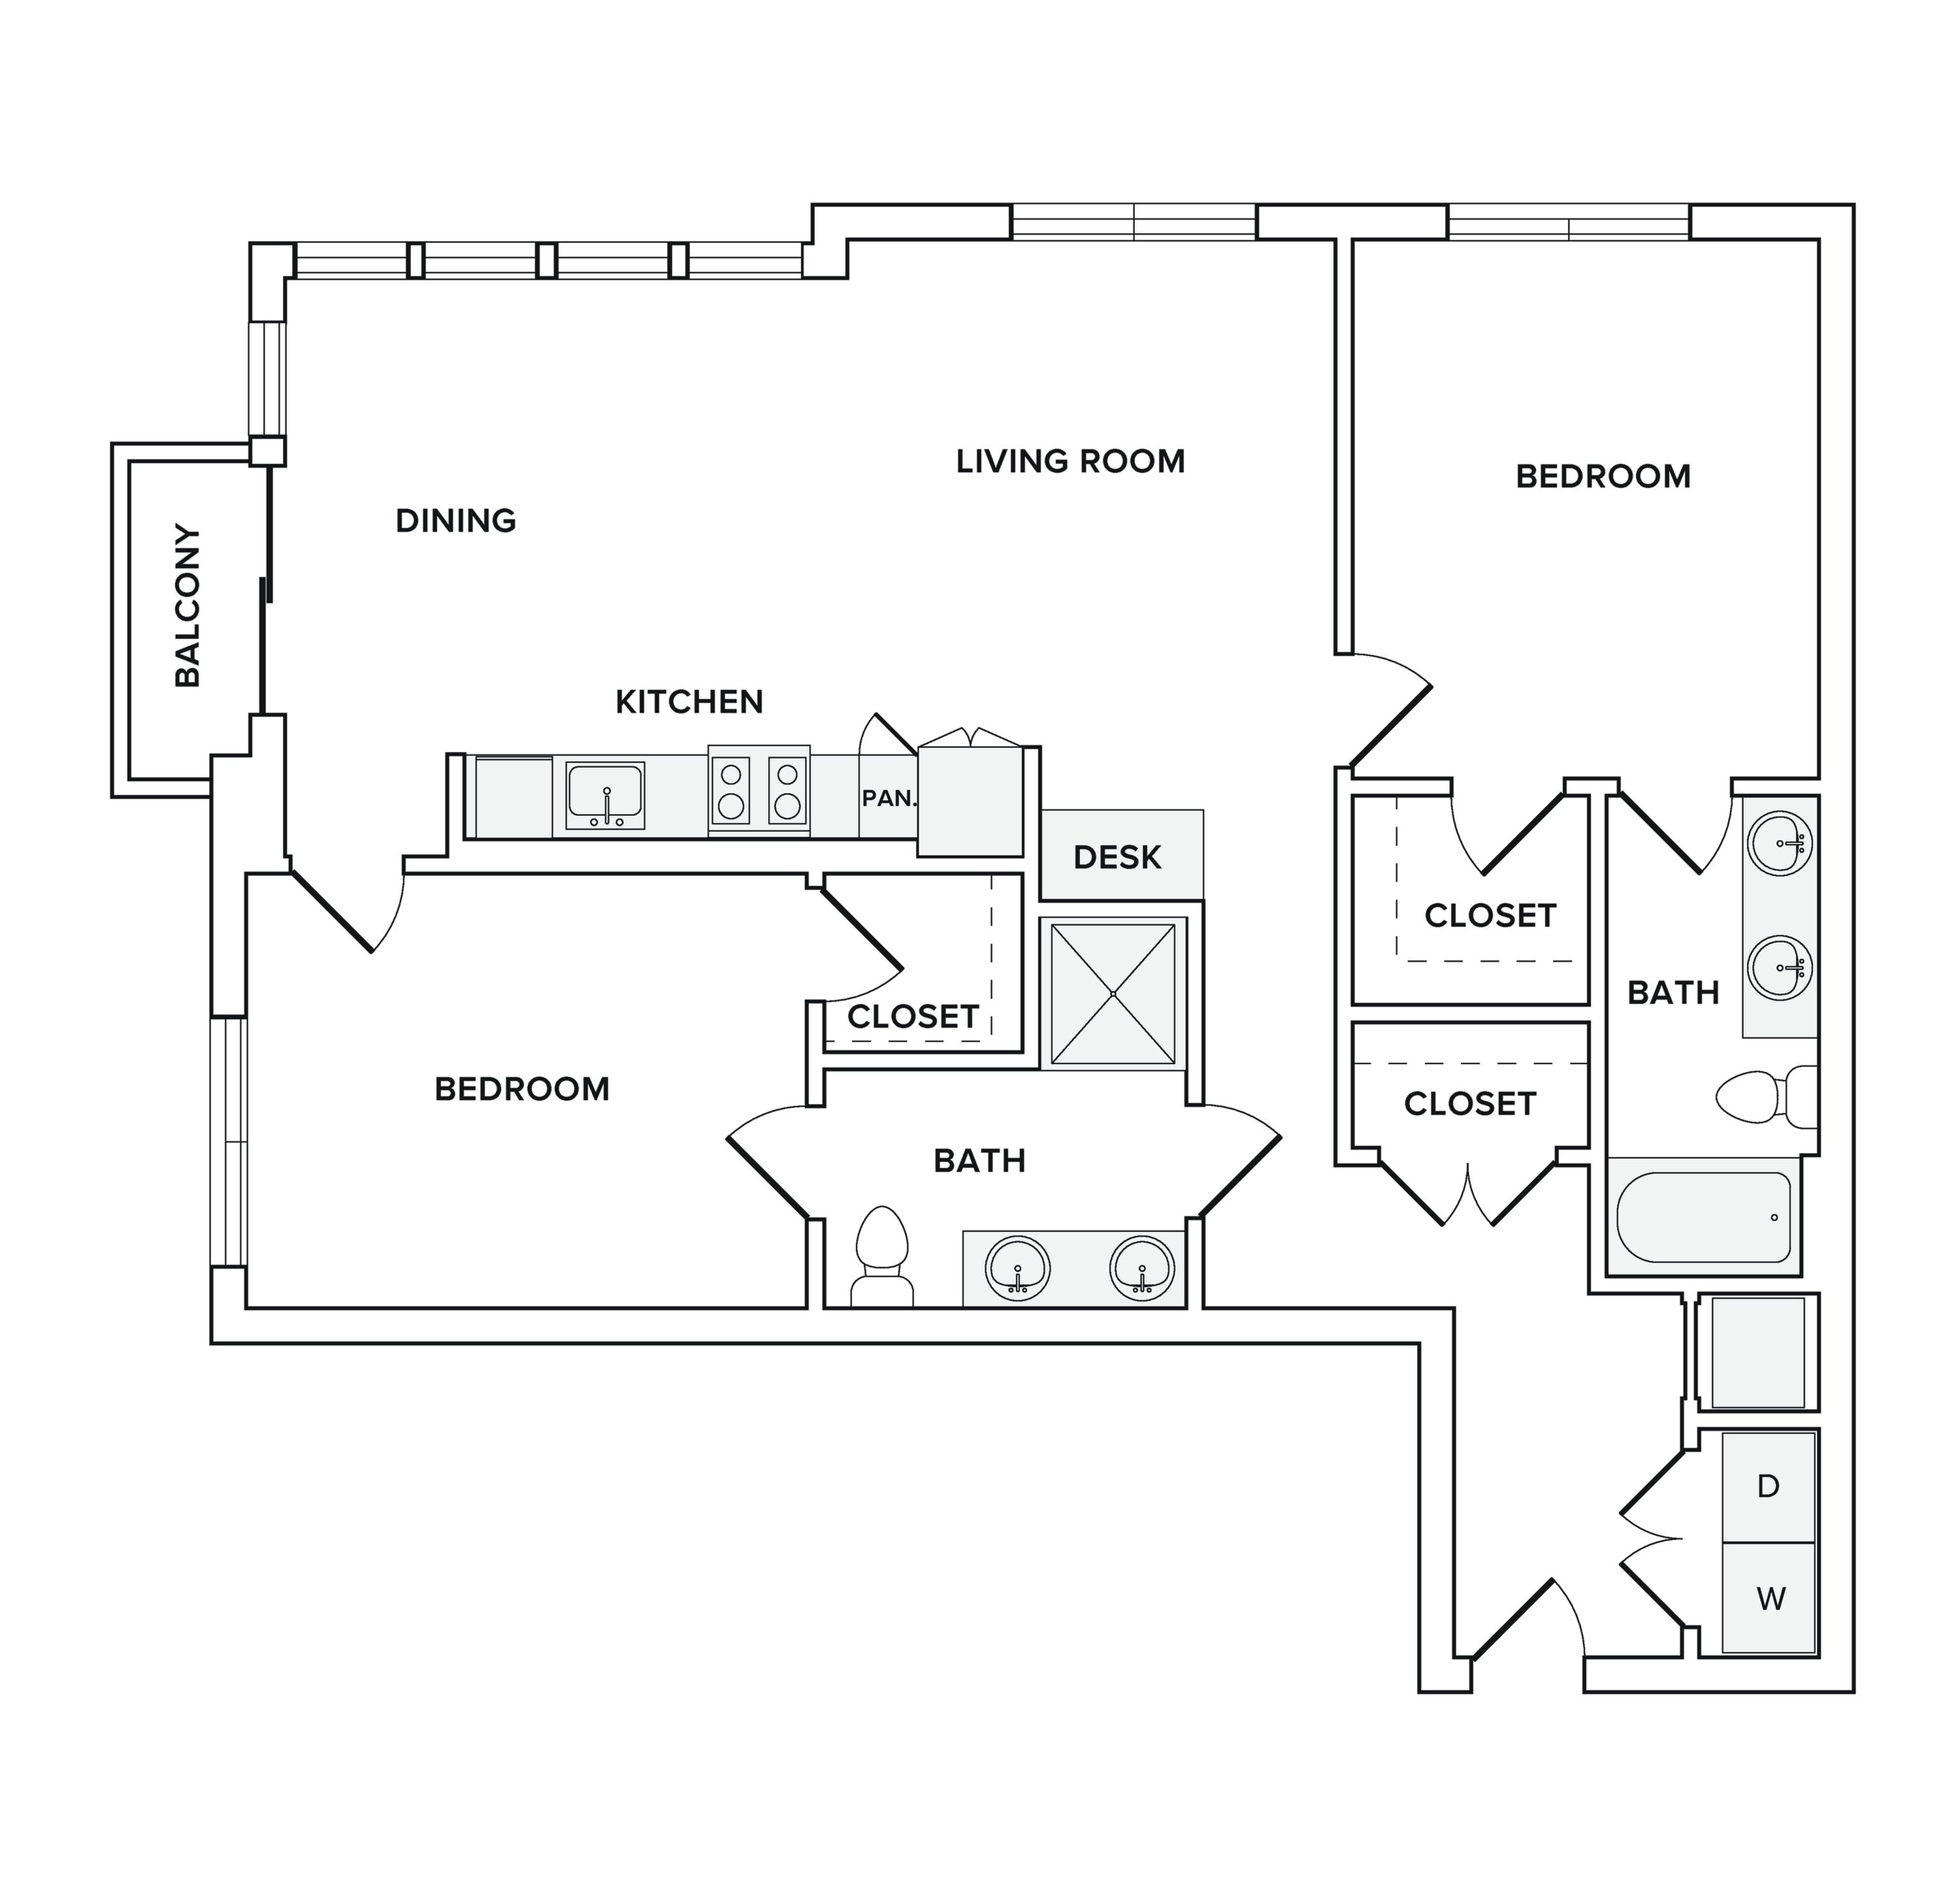 1202-1219  square foot two bedroom two bath apartment floorplan image